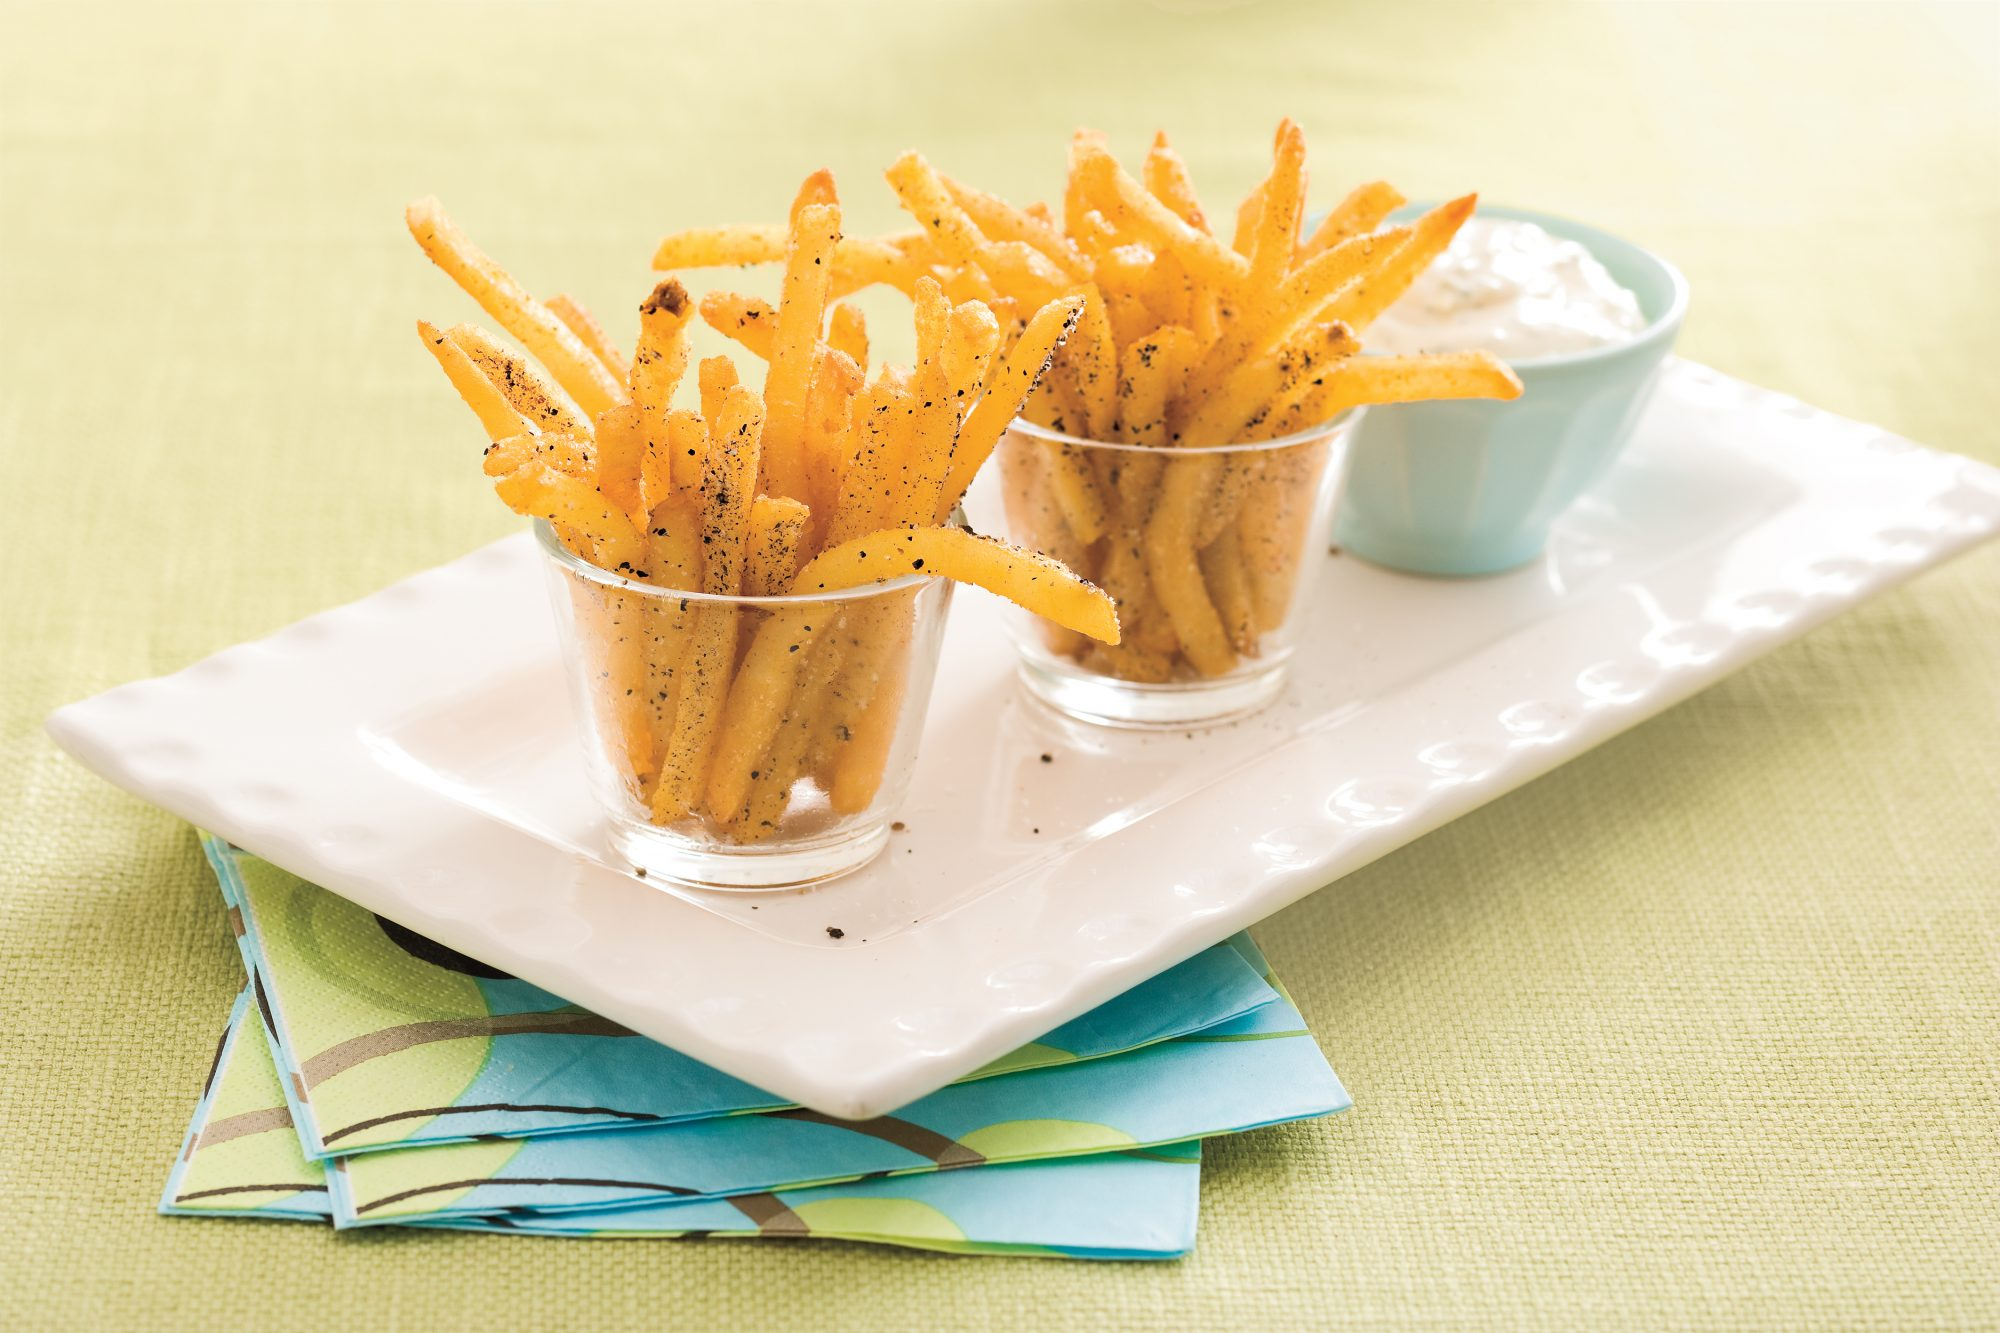 Salt-and-Pepper Oven Fries